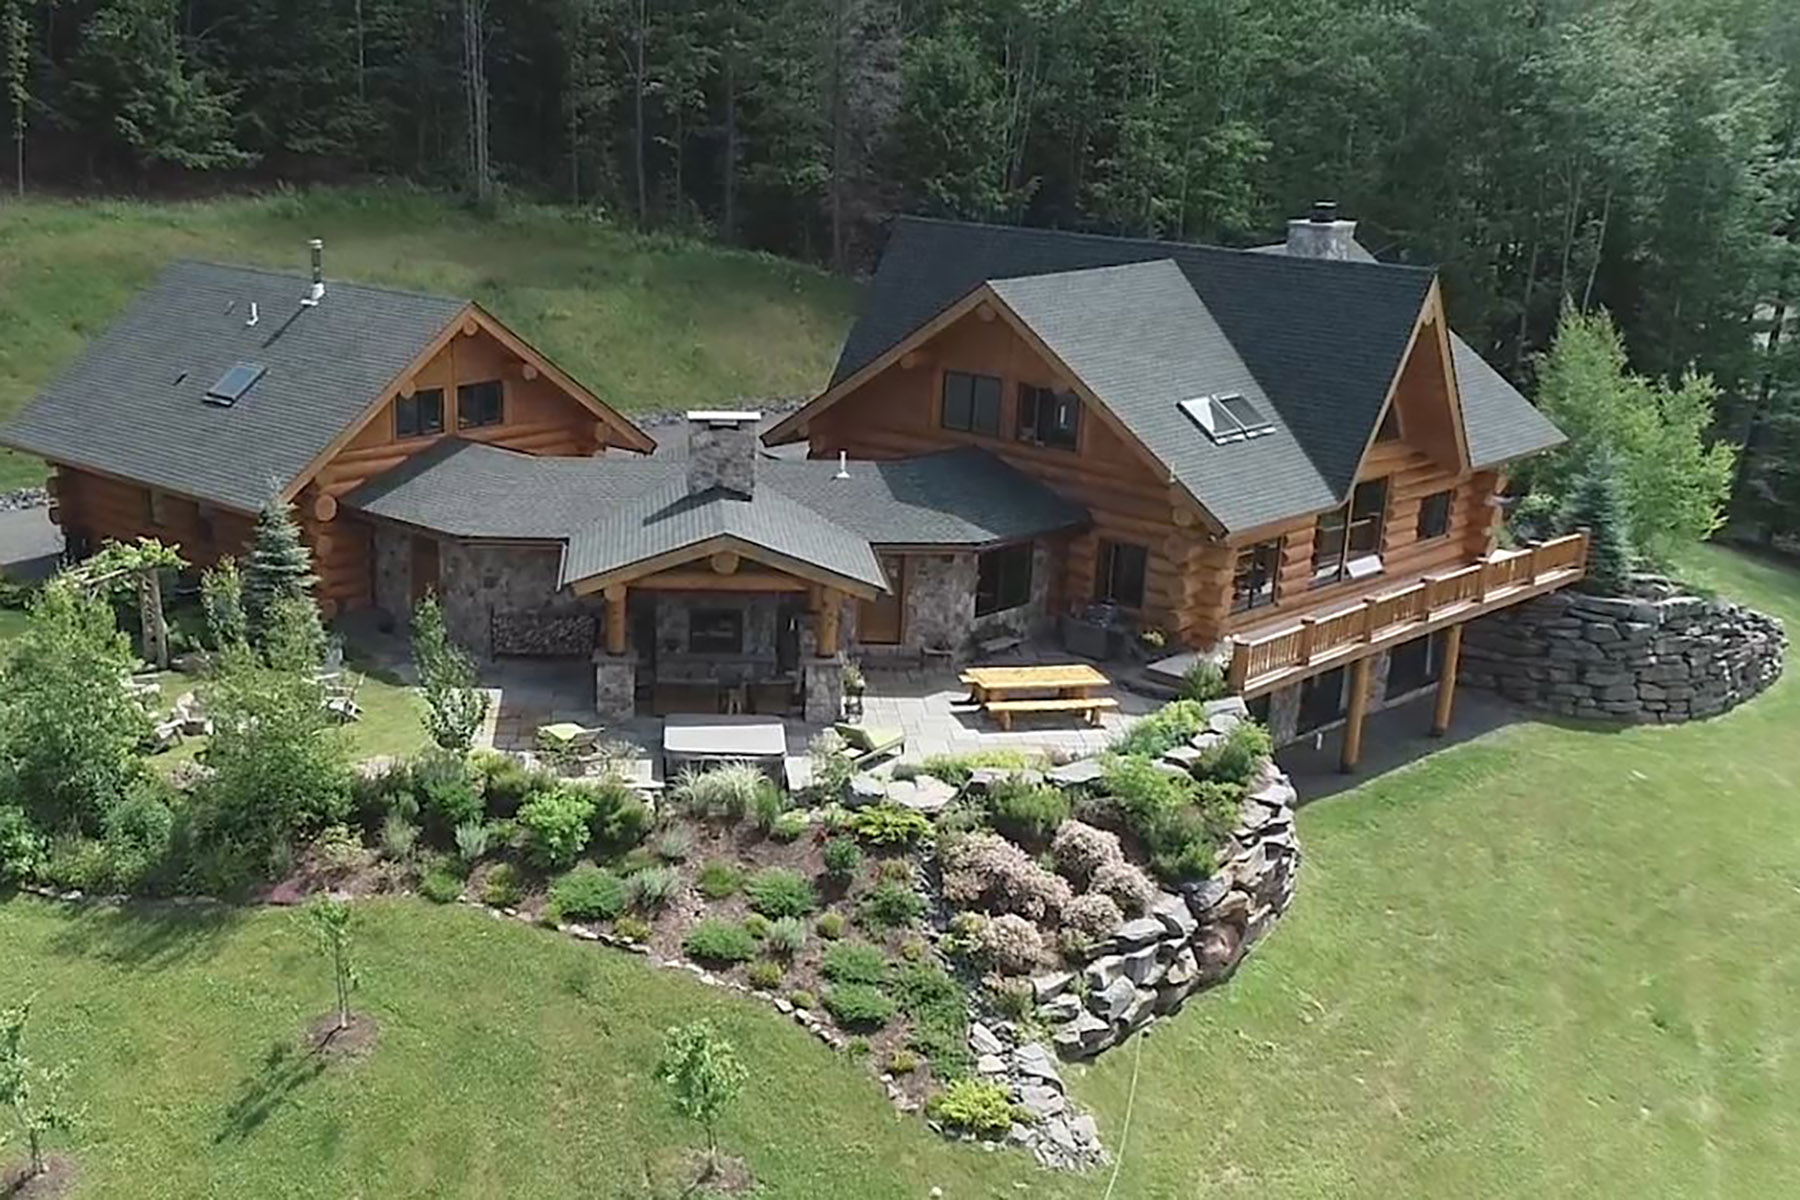 Single Family Homes for Sale at Out Of Area Town 97 Legendary Lane Windham, New York 12496 United States